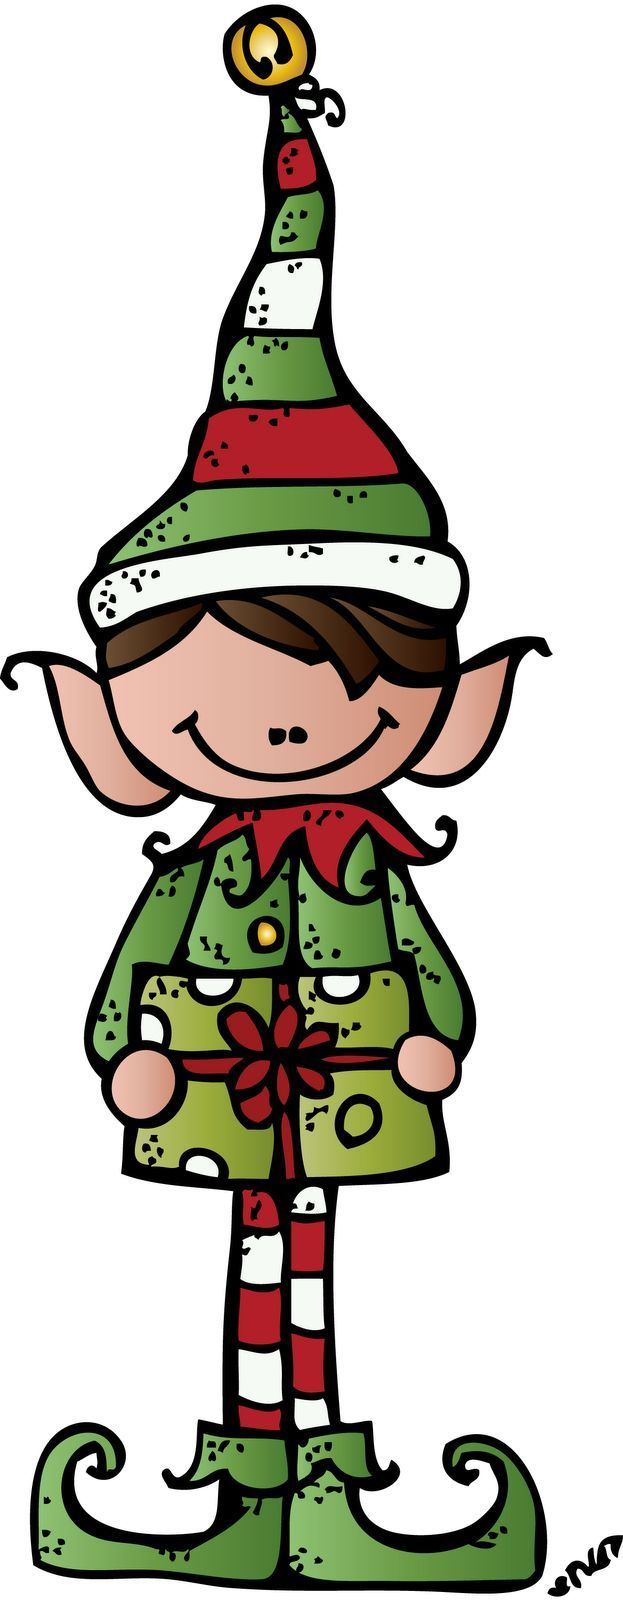 Clip Art Elf On The Shelf Clipart 1000 ideas about elf clipart on pinterest christmas the shelf google search